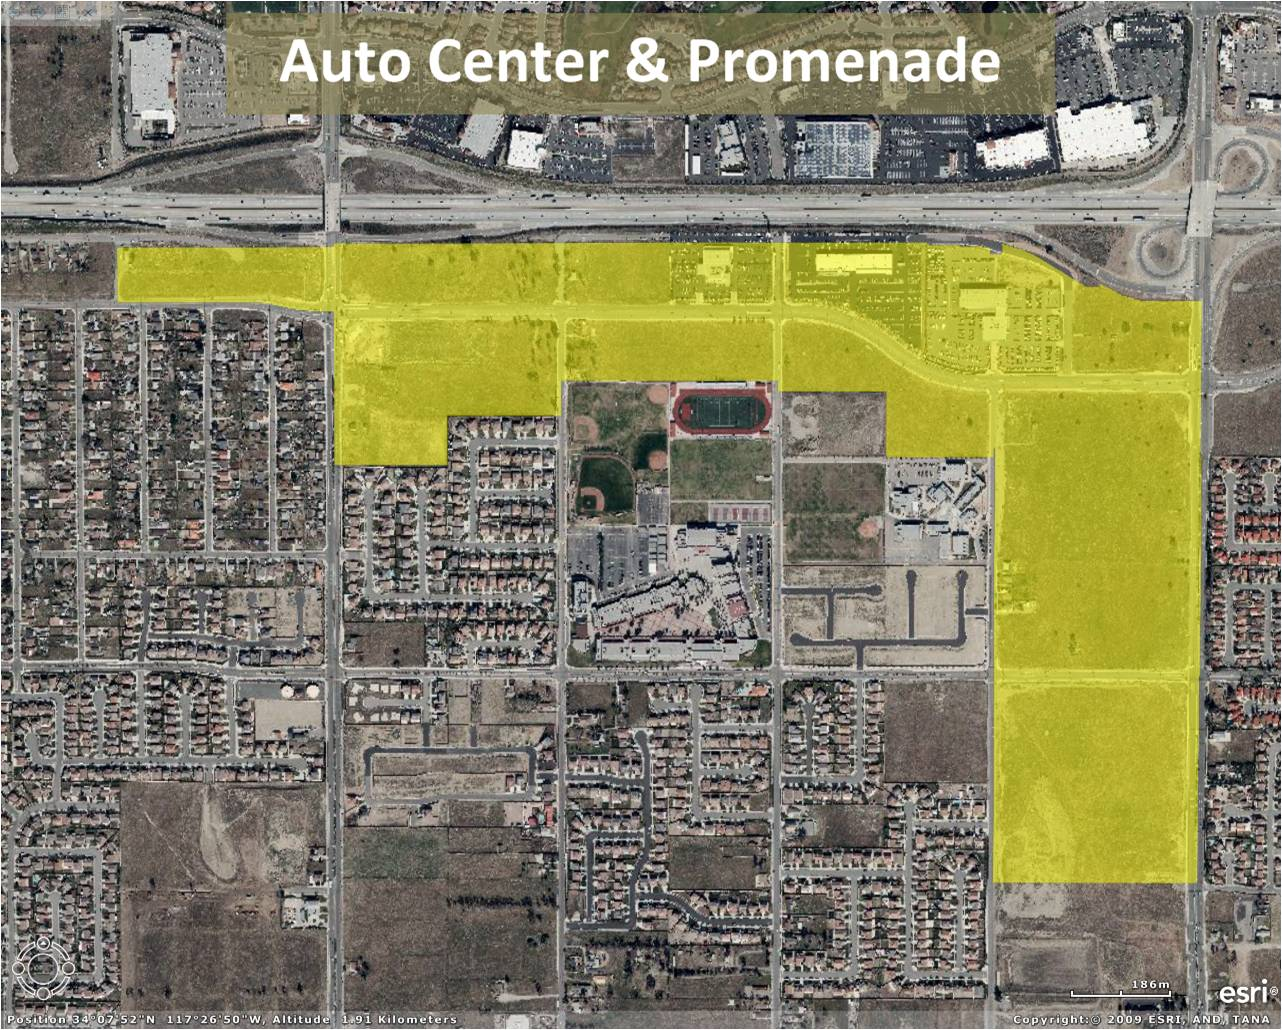 Auto Center and Promenade Project Map